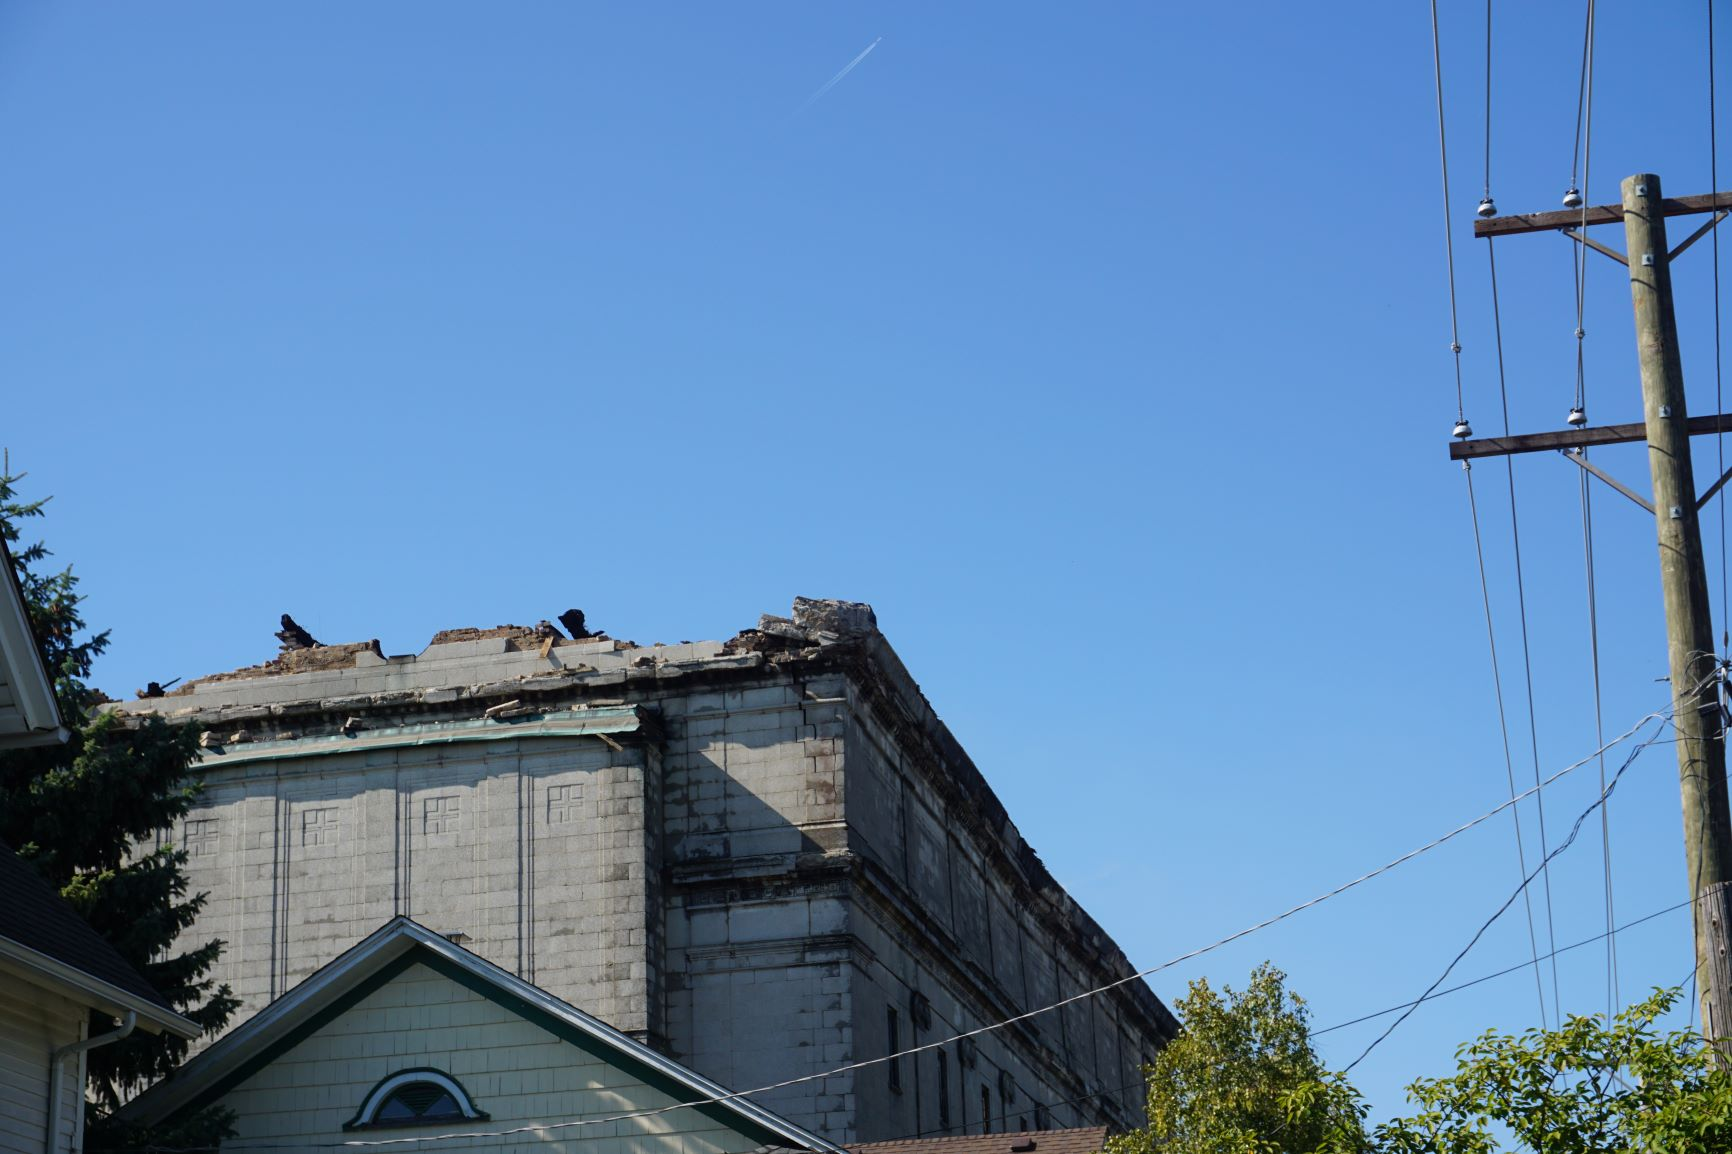 Structural damage to the Lincoln Masonic Temple.